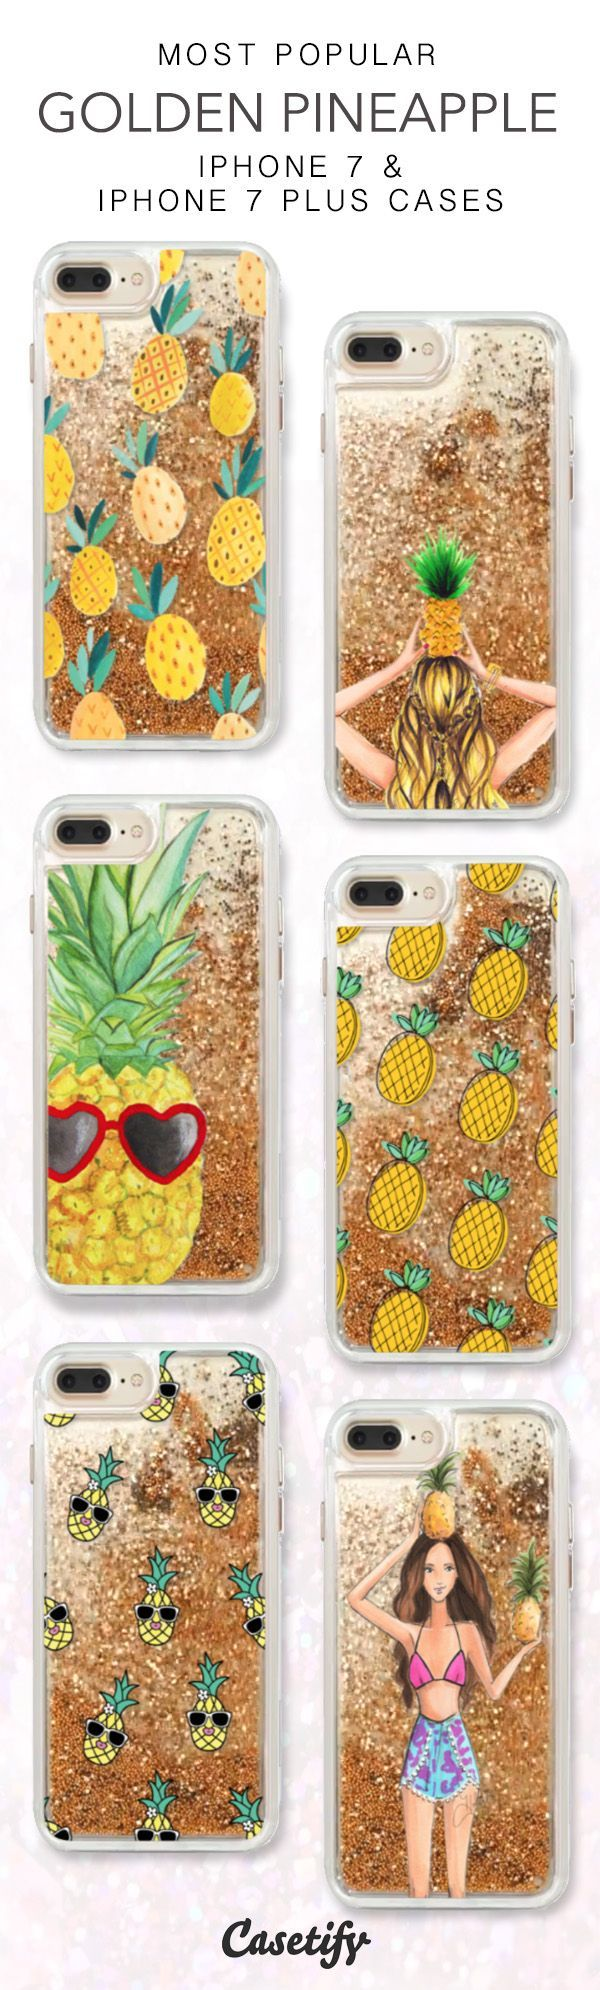 Most Popular Golden Pineapple iPhone 7 Cases here > https://www.casetify.com/collections/iphone-7-glitter-cases#/